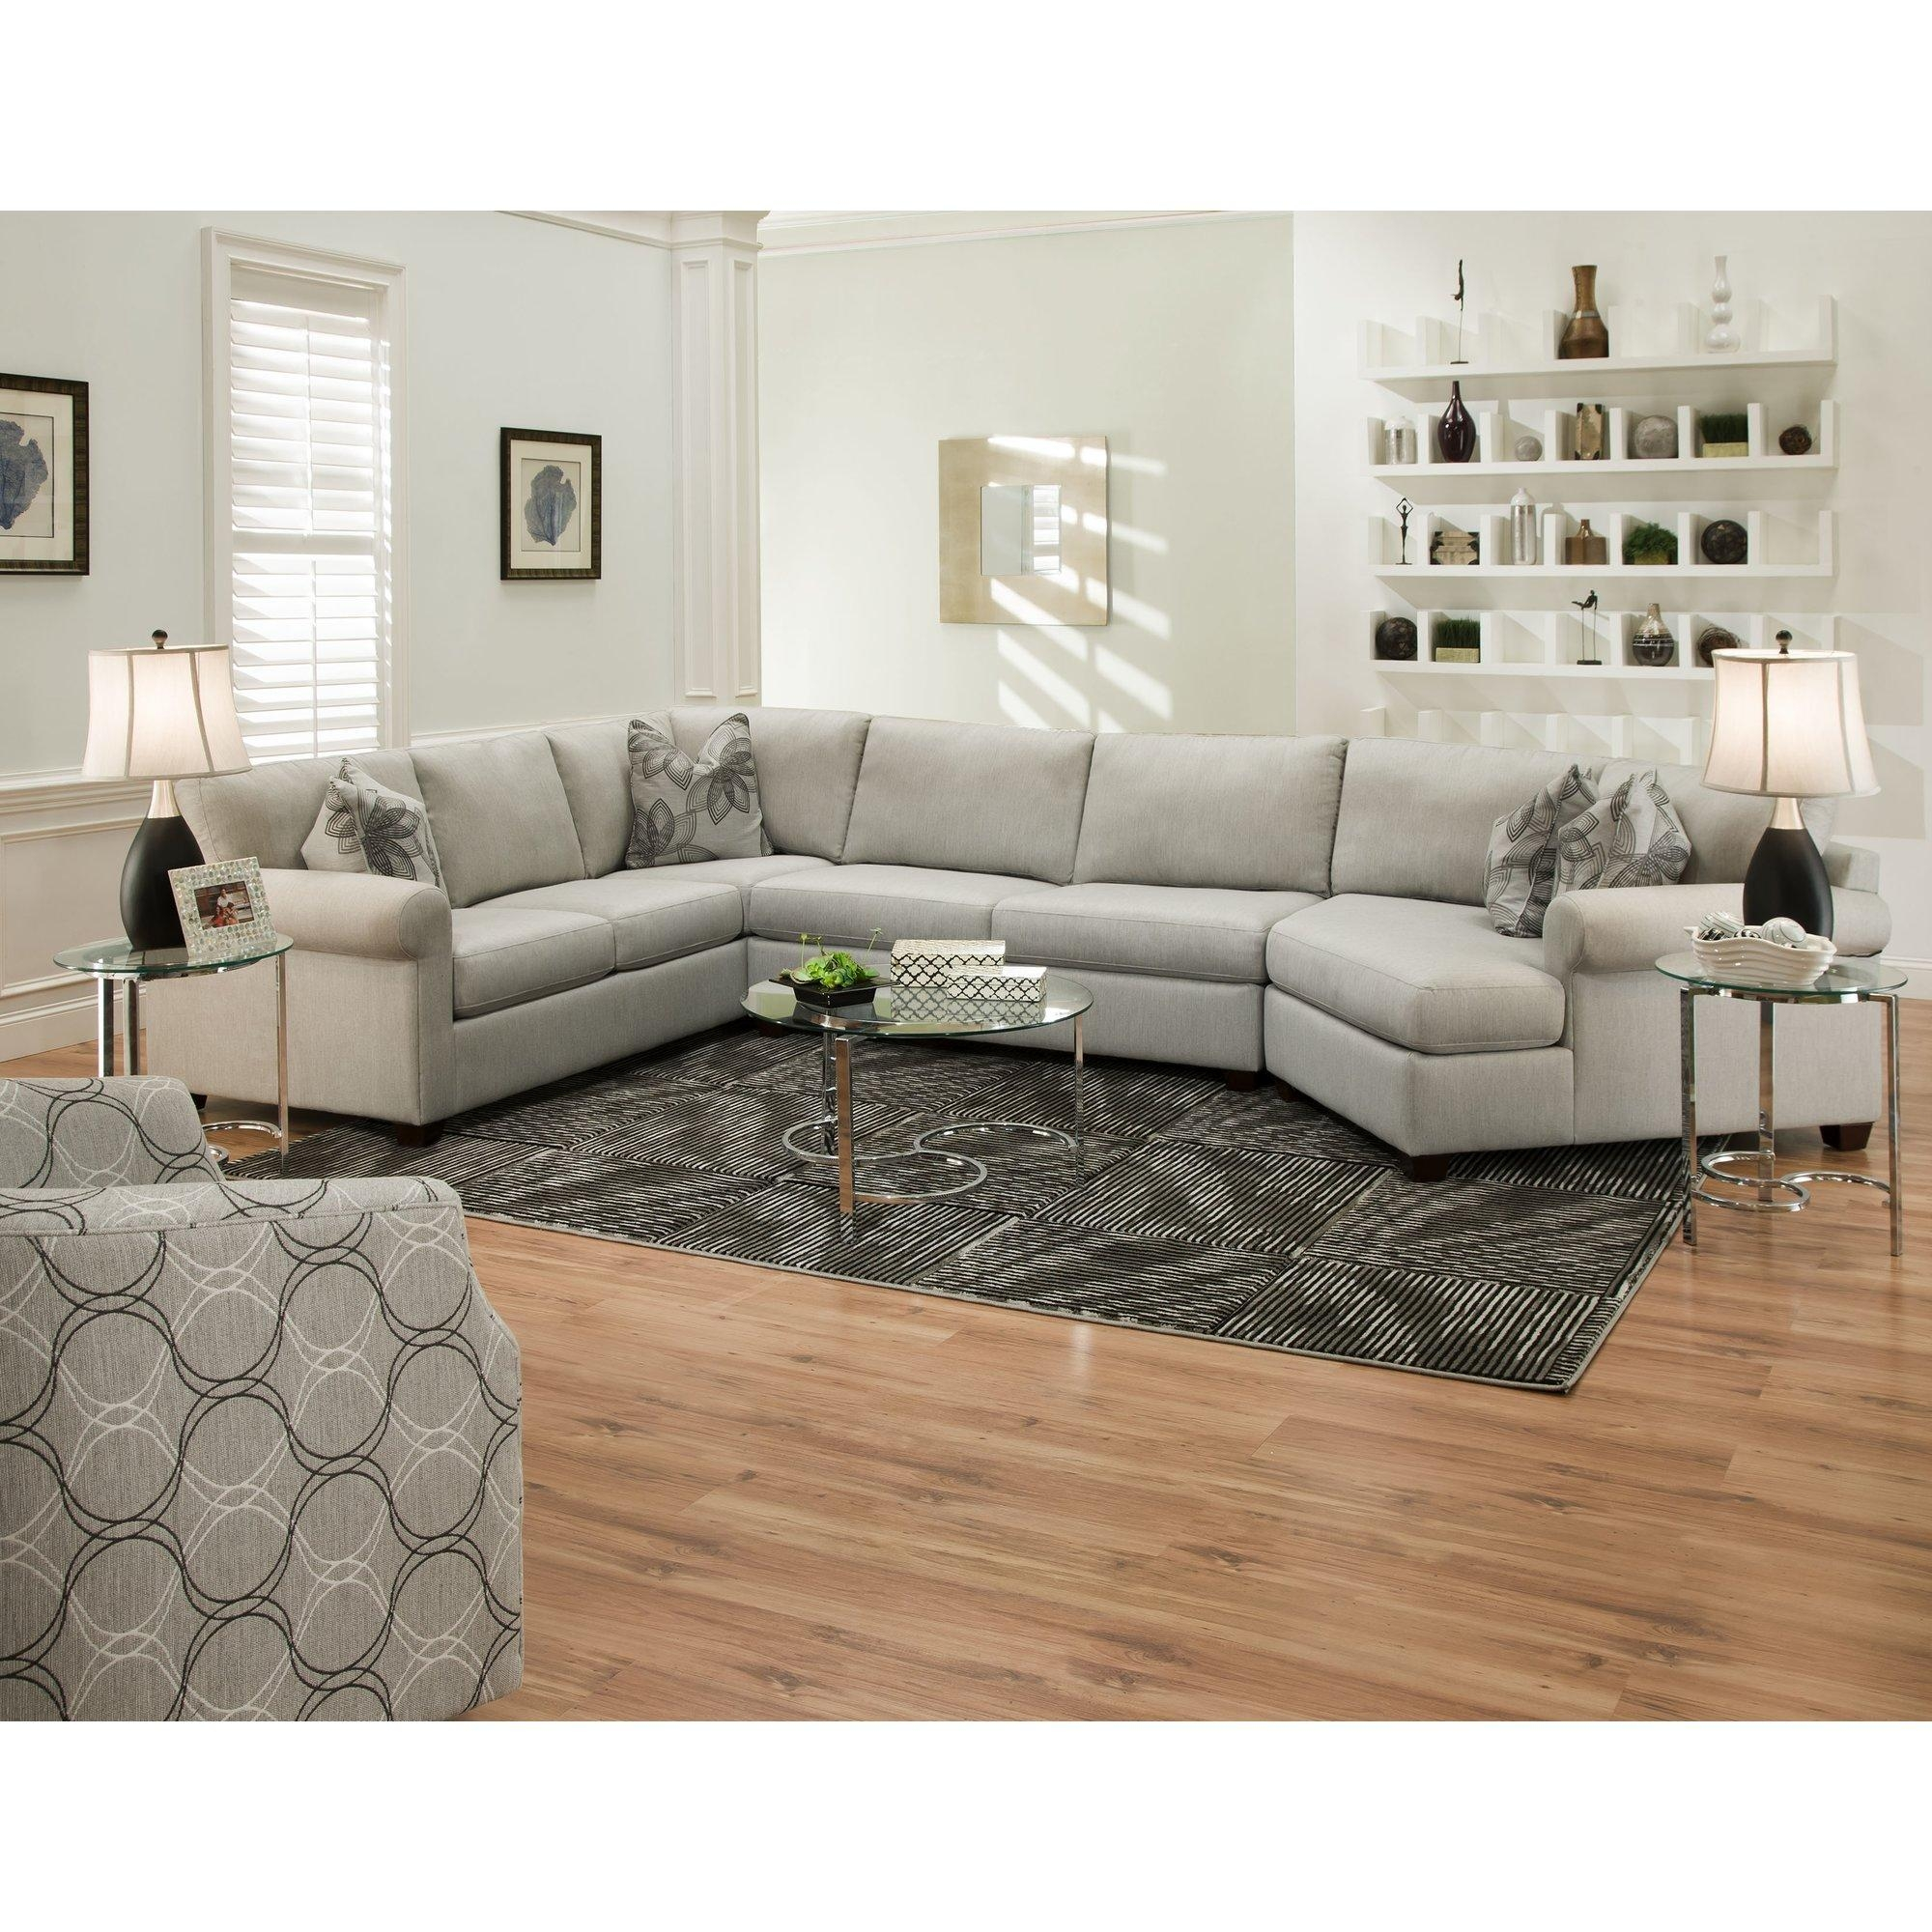 Bauhaus Sofa Reviews – Leather Sectional Sofa Intended For Bauhaus Sectional (Image 9 of 15)